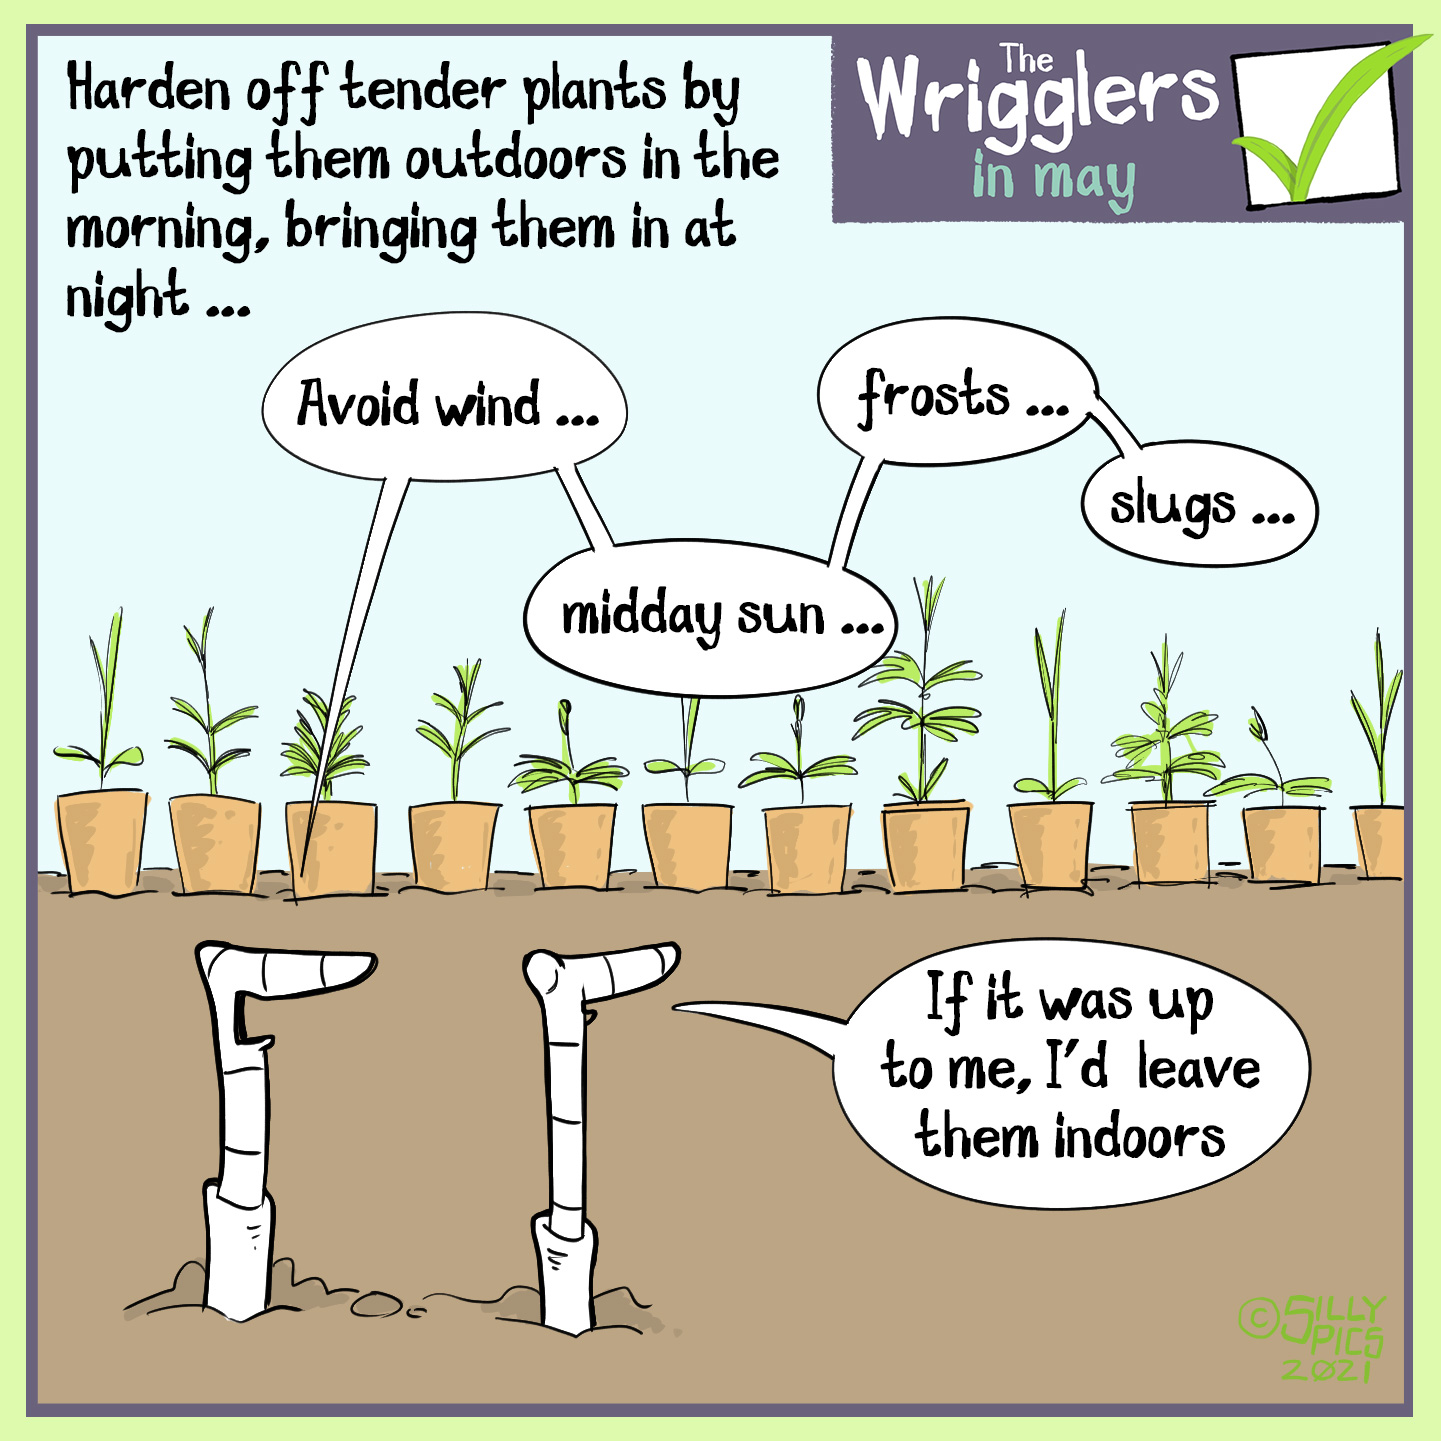 """The cartoon headline says, """"Harden off tender plants by putting them out doors in the morning, bringing in at night …."""" The image is of two worms looking at a load of young tender plants in a row. One of the worms says o the other, """"Avoid wind, midday sun, frosts, slugs …"""" The other work says, """" If it ws up to me I'd leave them indoors"""""""